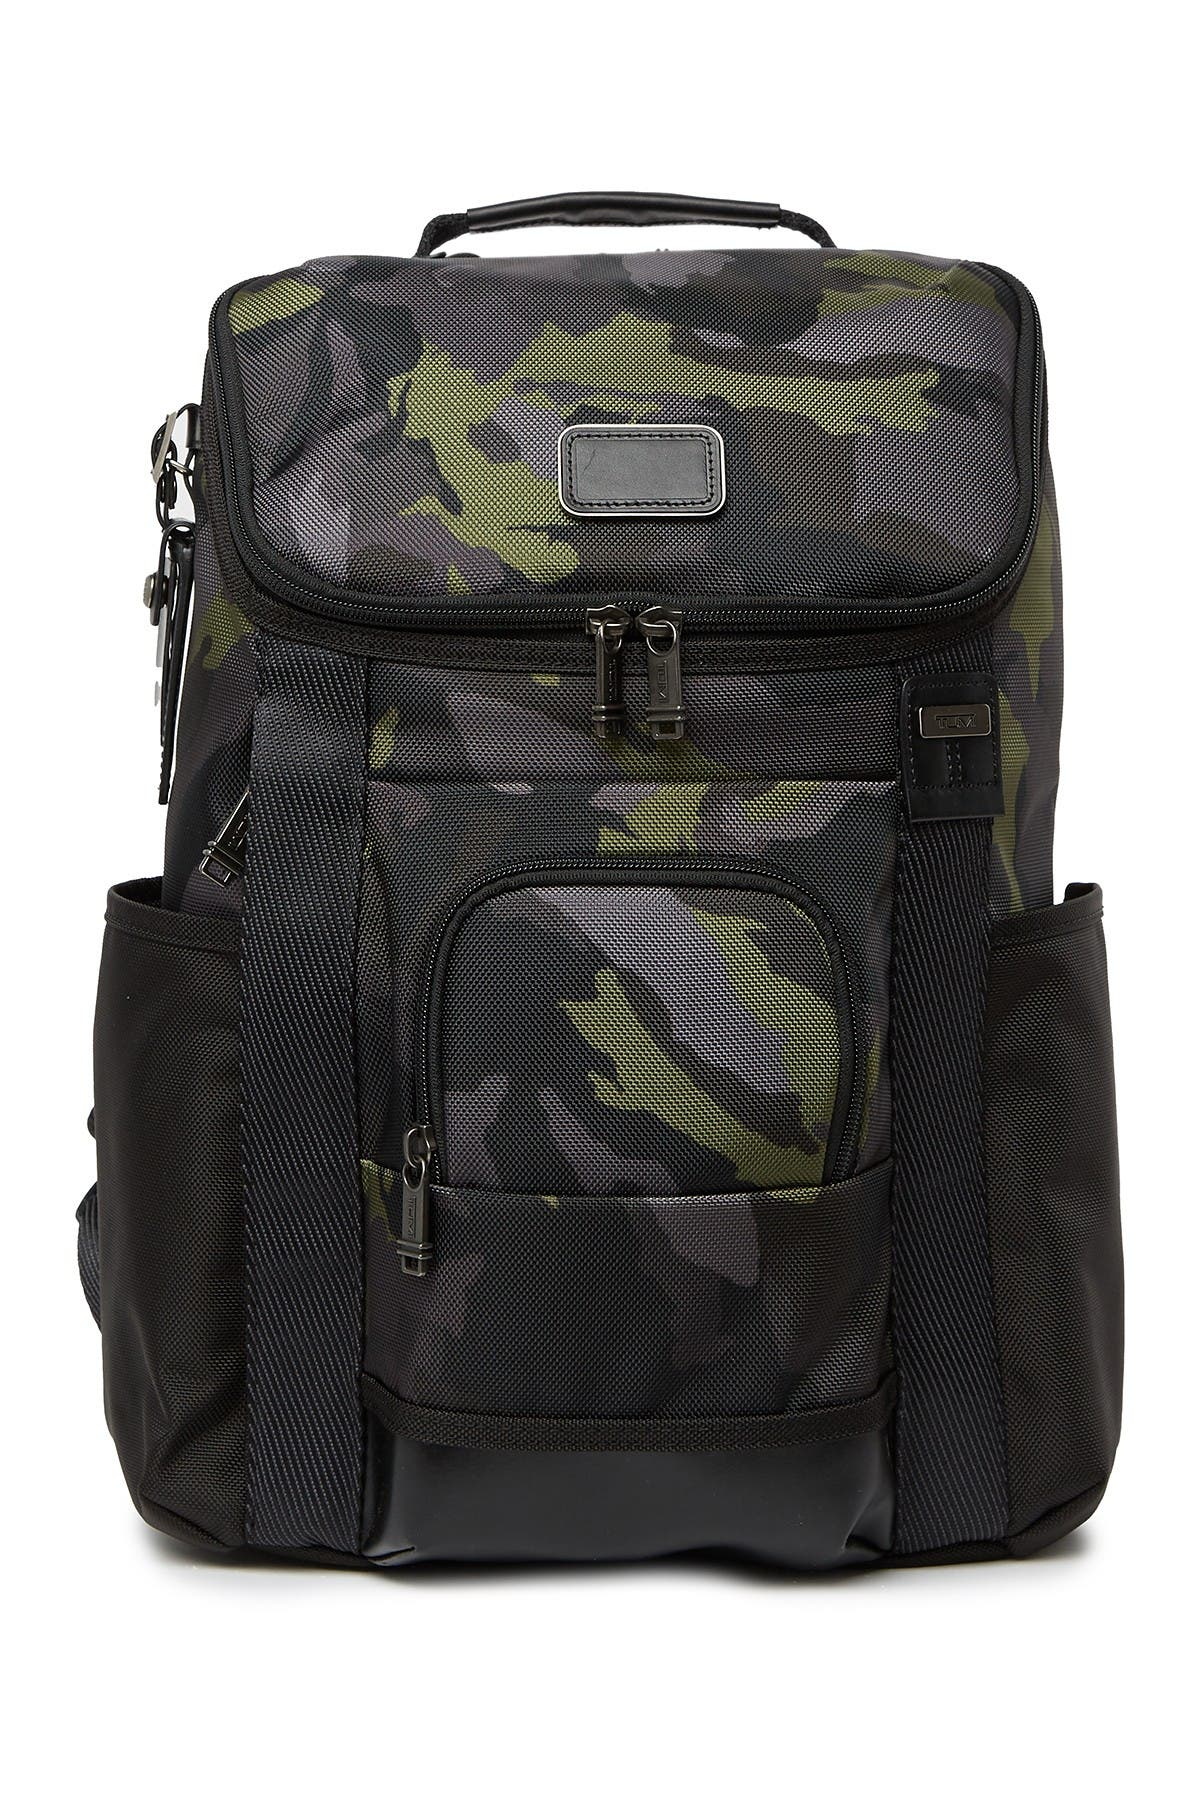 Image of Tumi Thornhill Camo Print Backpack